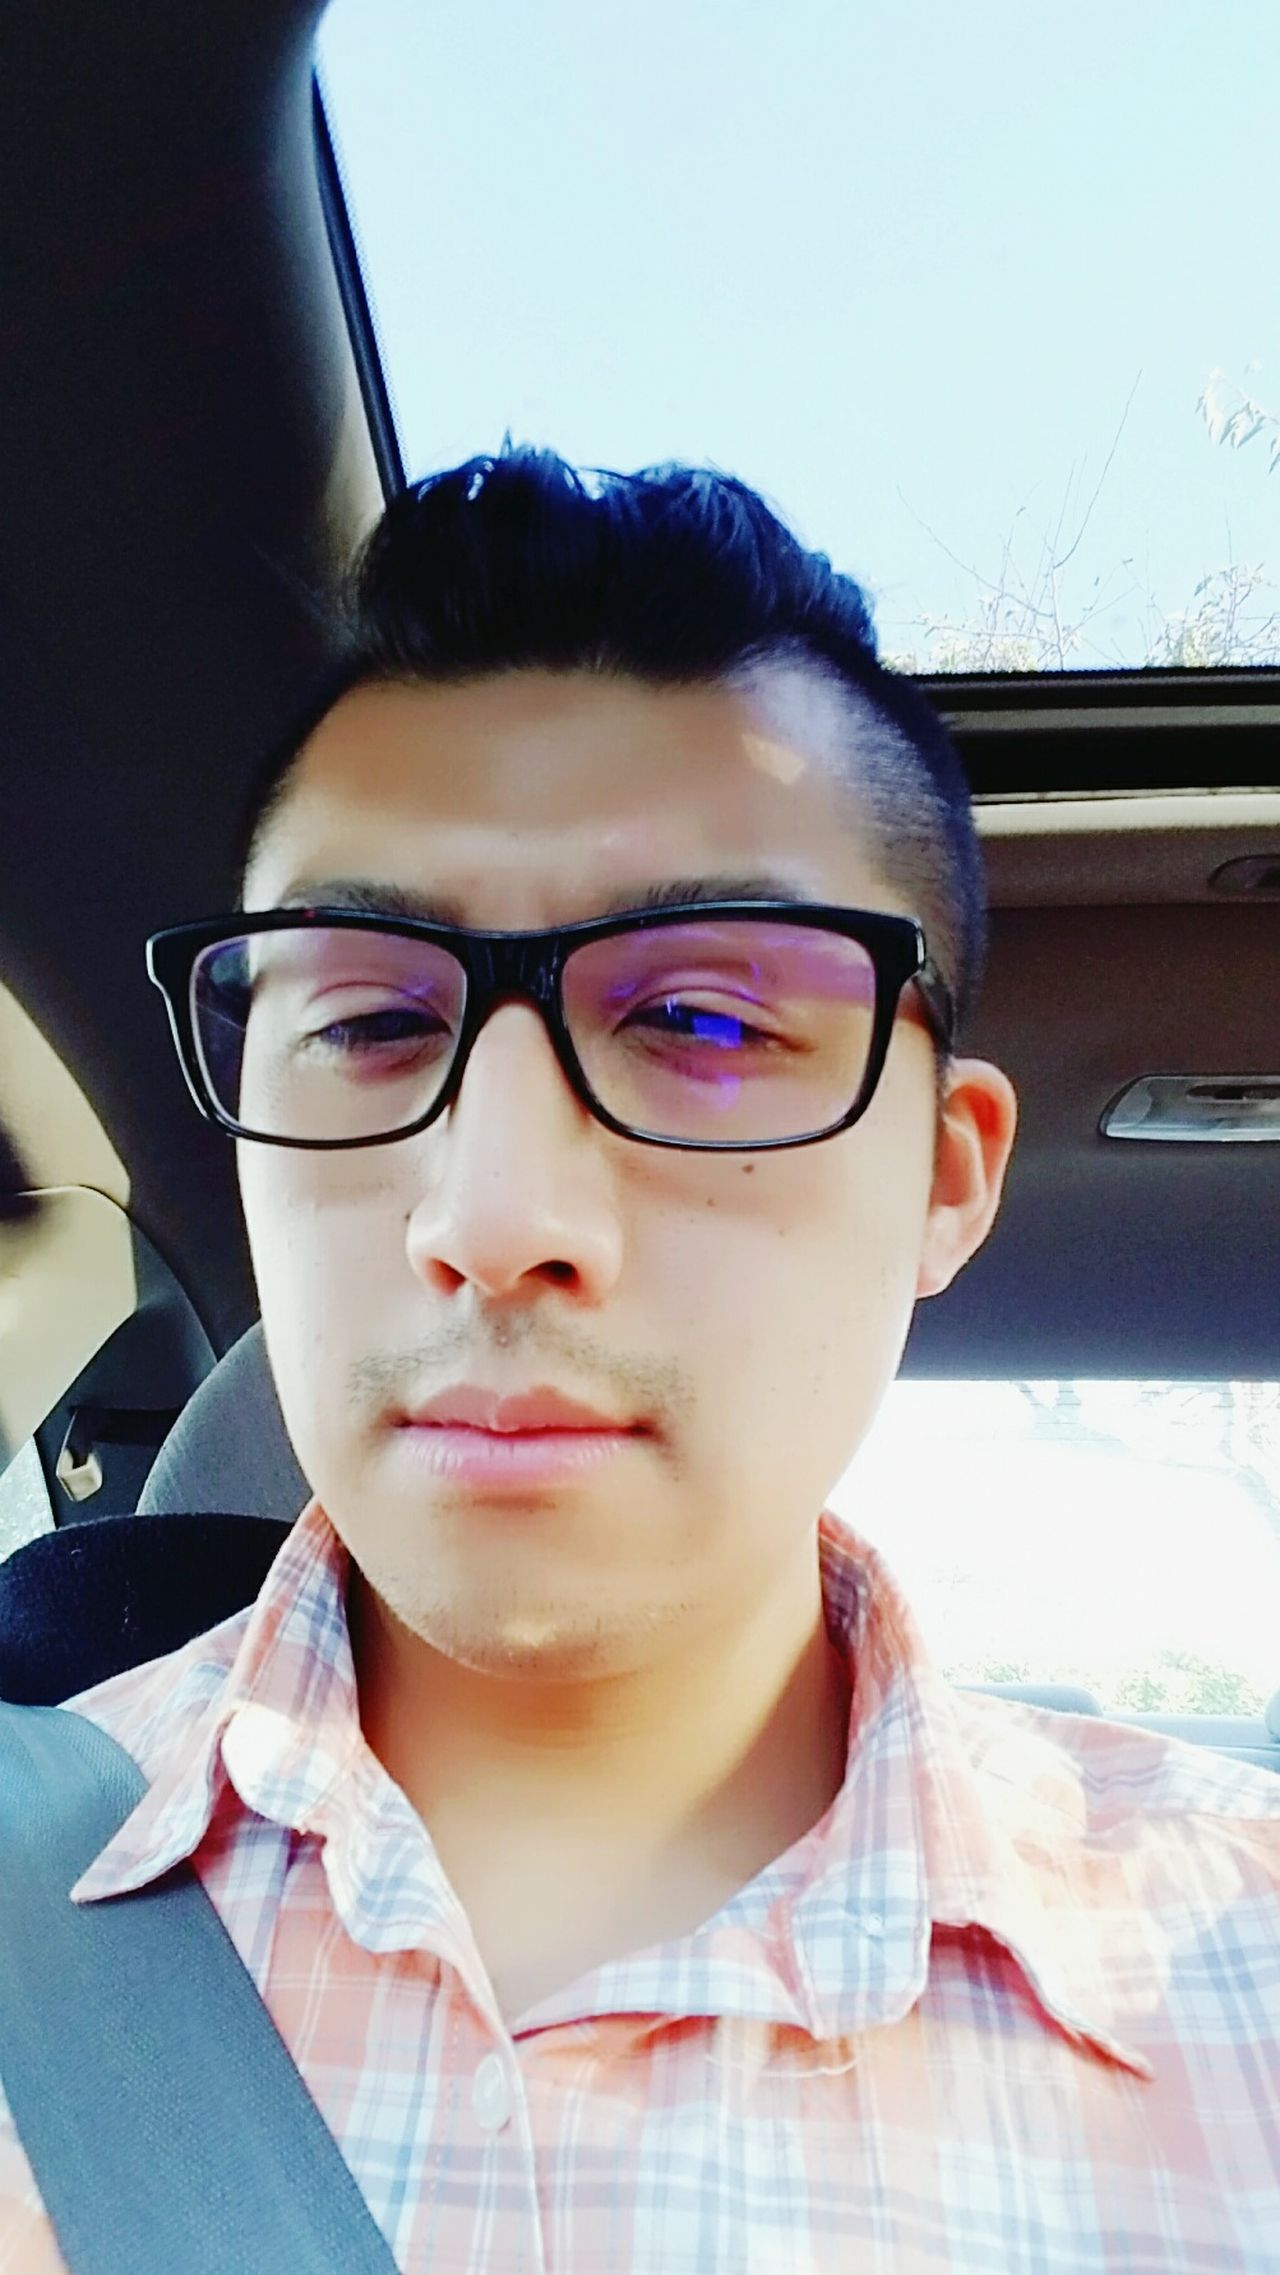 Another Selfie  Selfıe Glasses Specs Orange Plaid Plaid Shirt  Asian  Questioning HeadshotGUCCI GucciGlasses Amateurmodelling Handsome Smile Modeling Menhairstyles Angles Men Mensfashion Menhairstyle Mustache